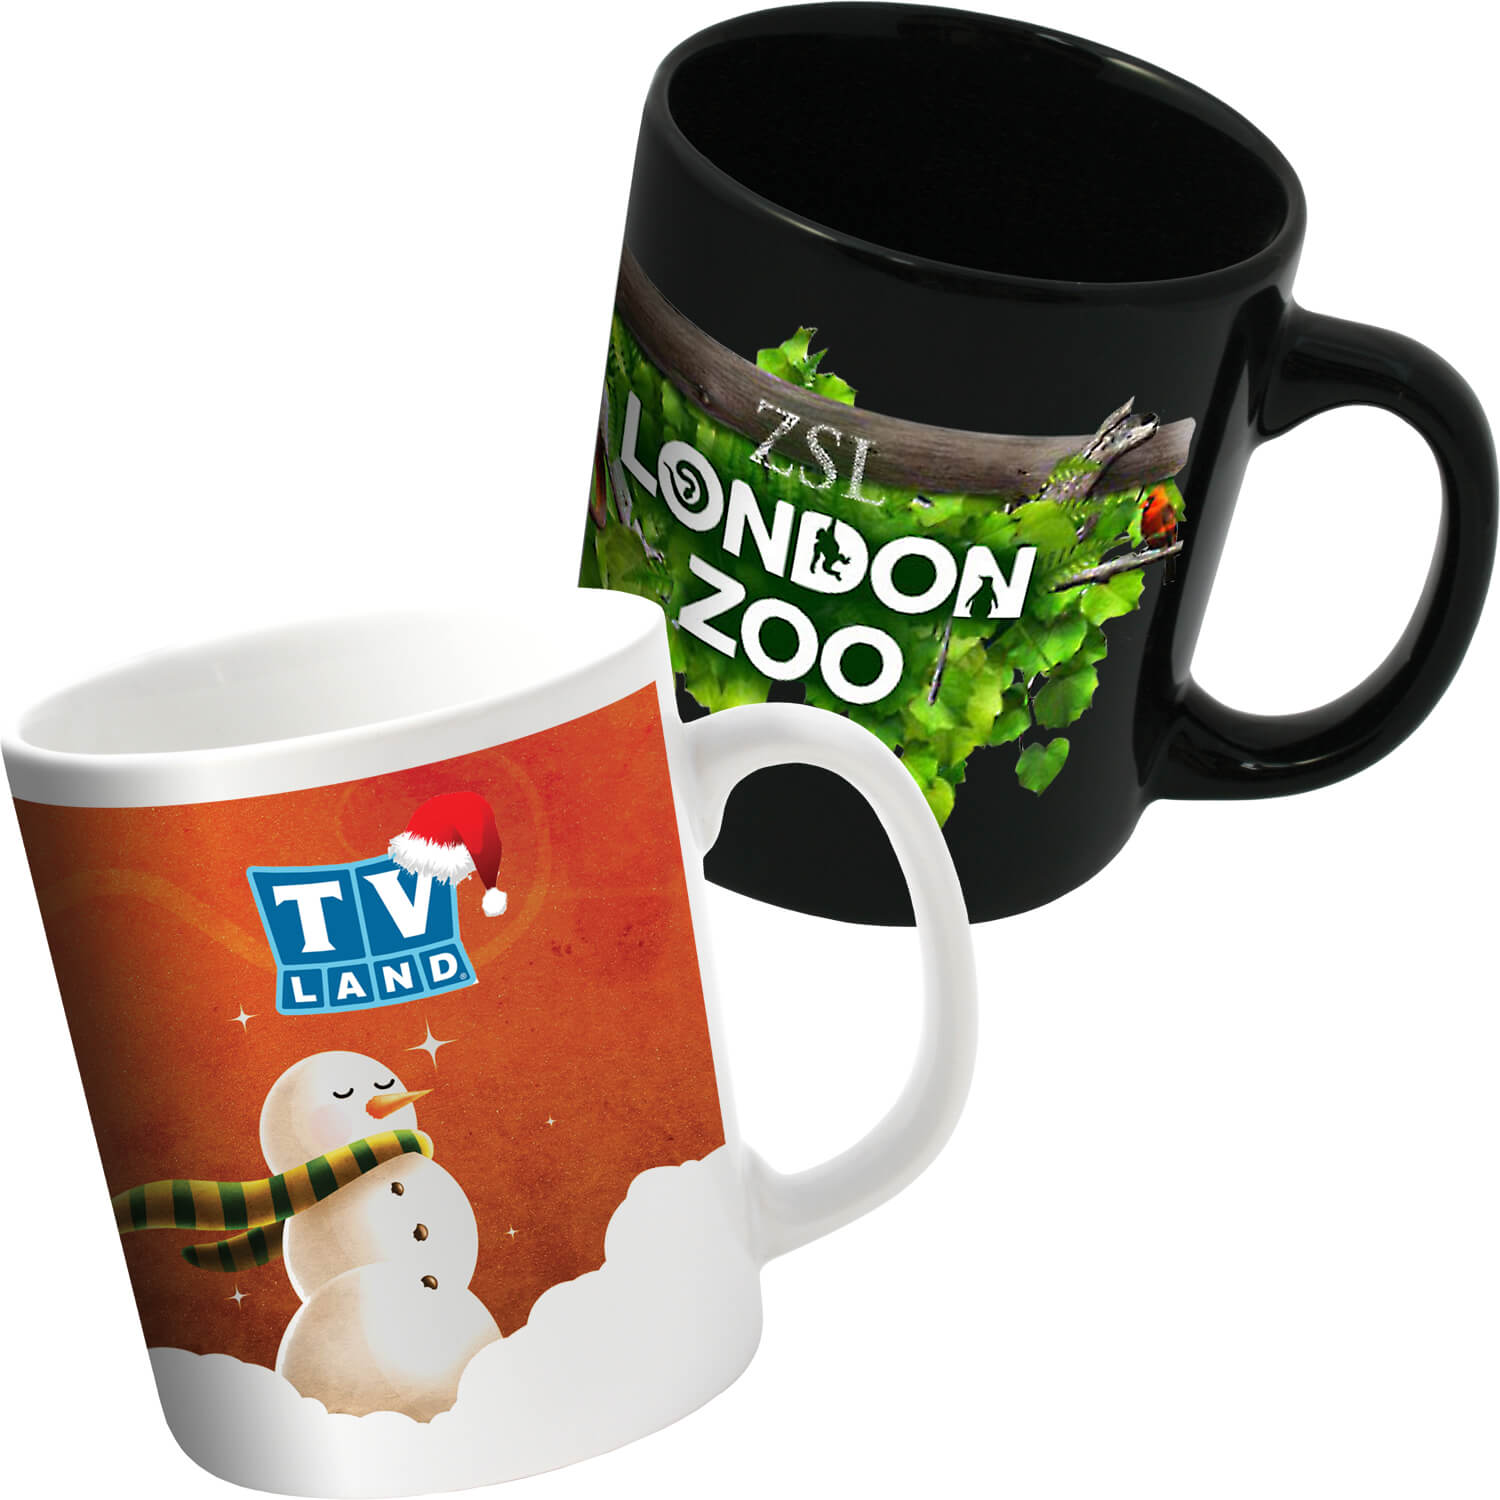 Full Colour Promotional Mug